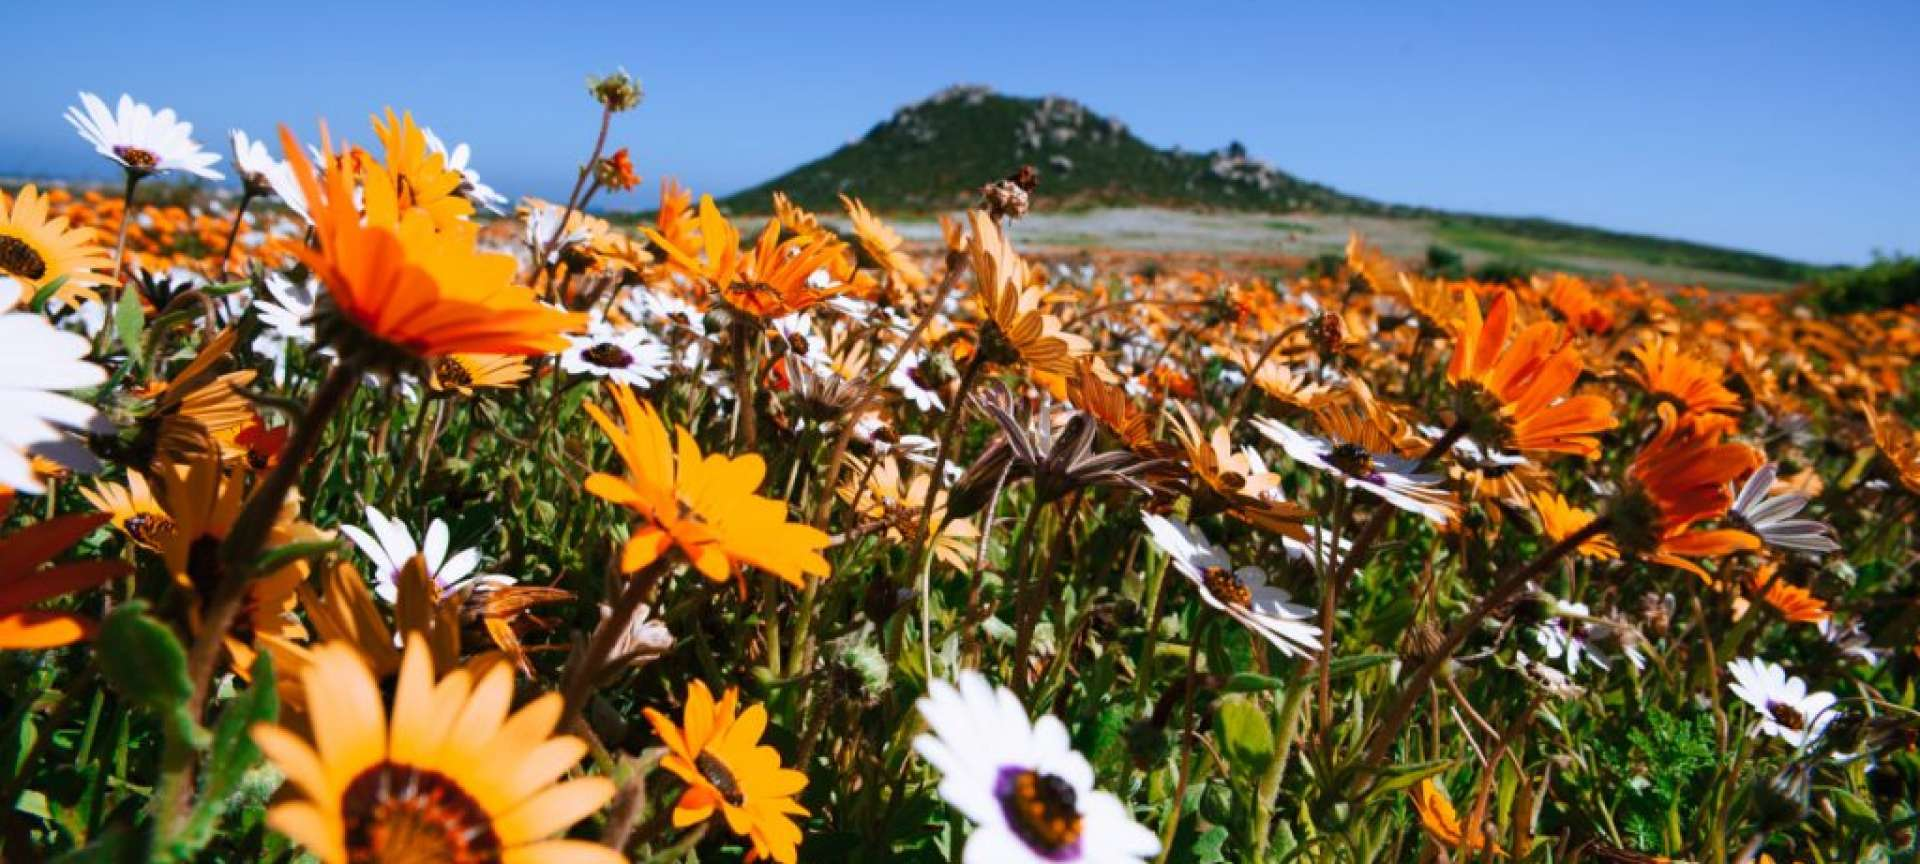 Wildflowers along the west coast in full bloom